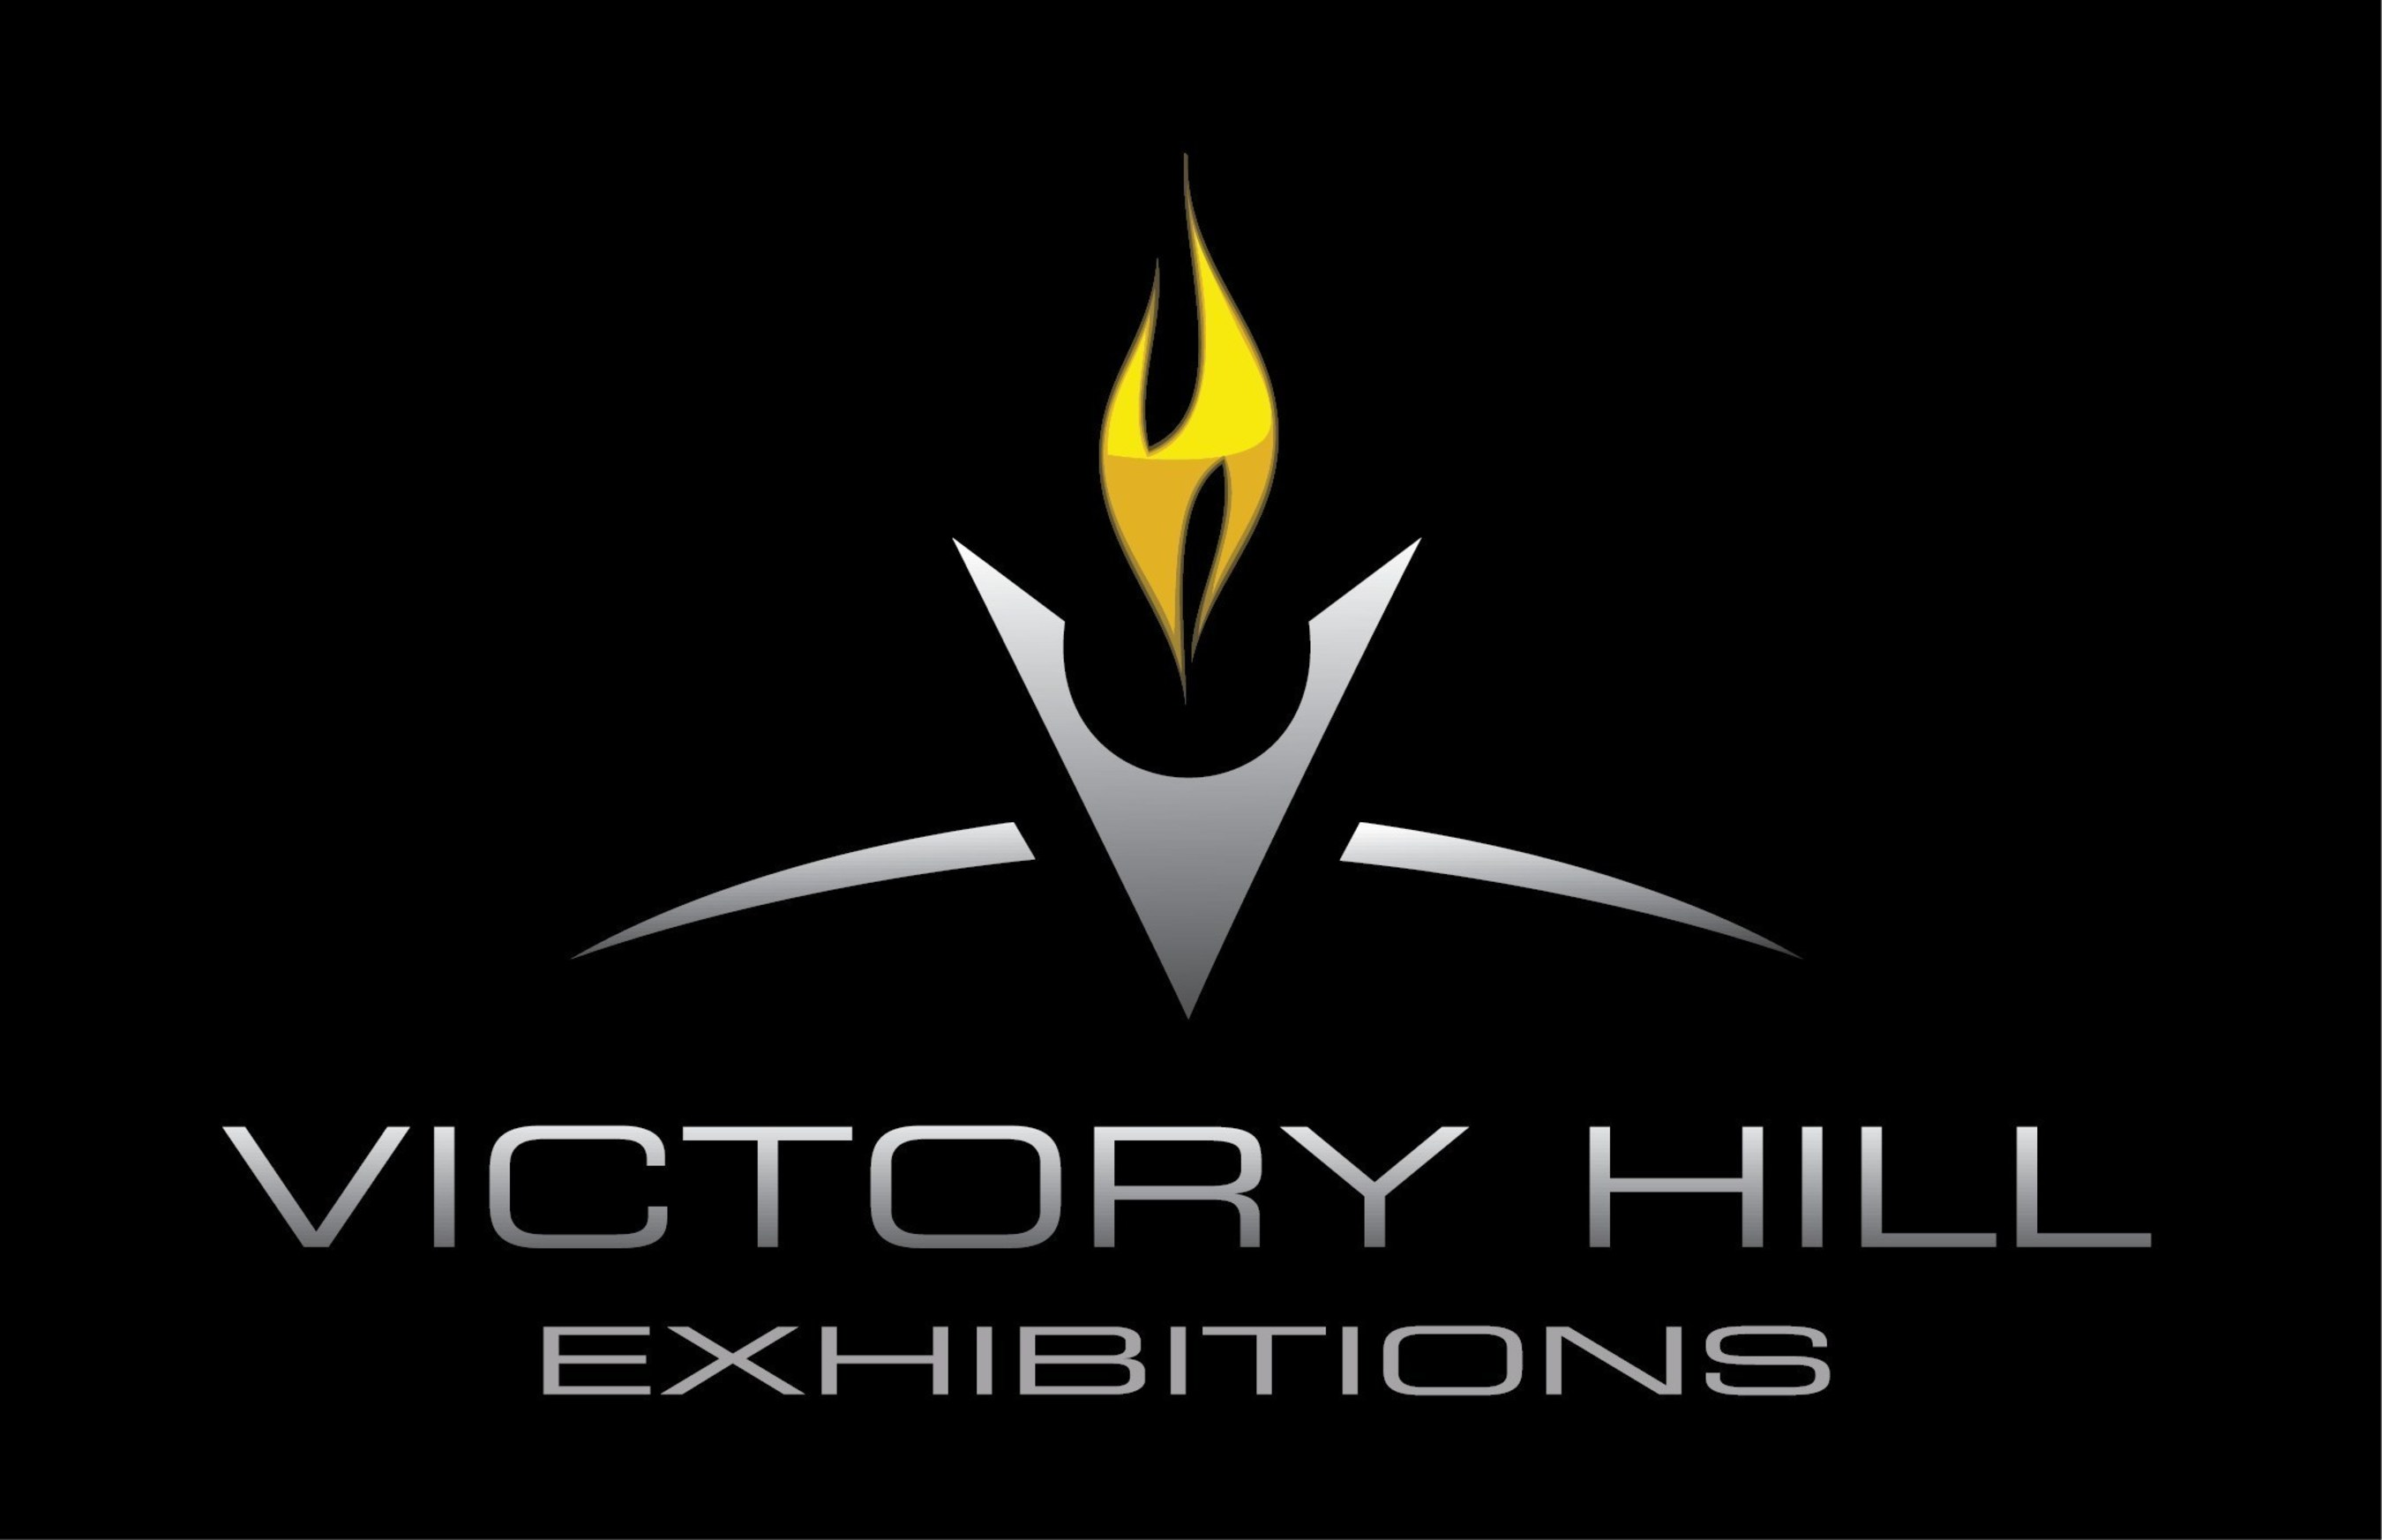 Victory Hill Exhibitions Teams With Hasbro For New 'TRANSFORMERS' Exhibit